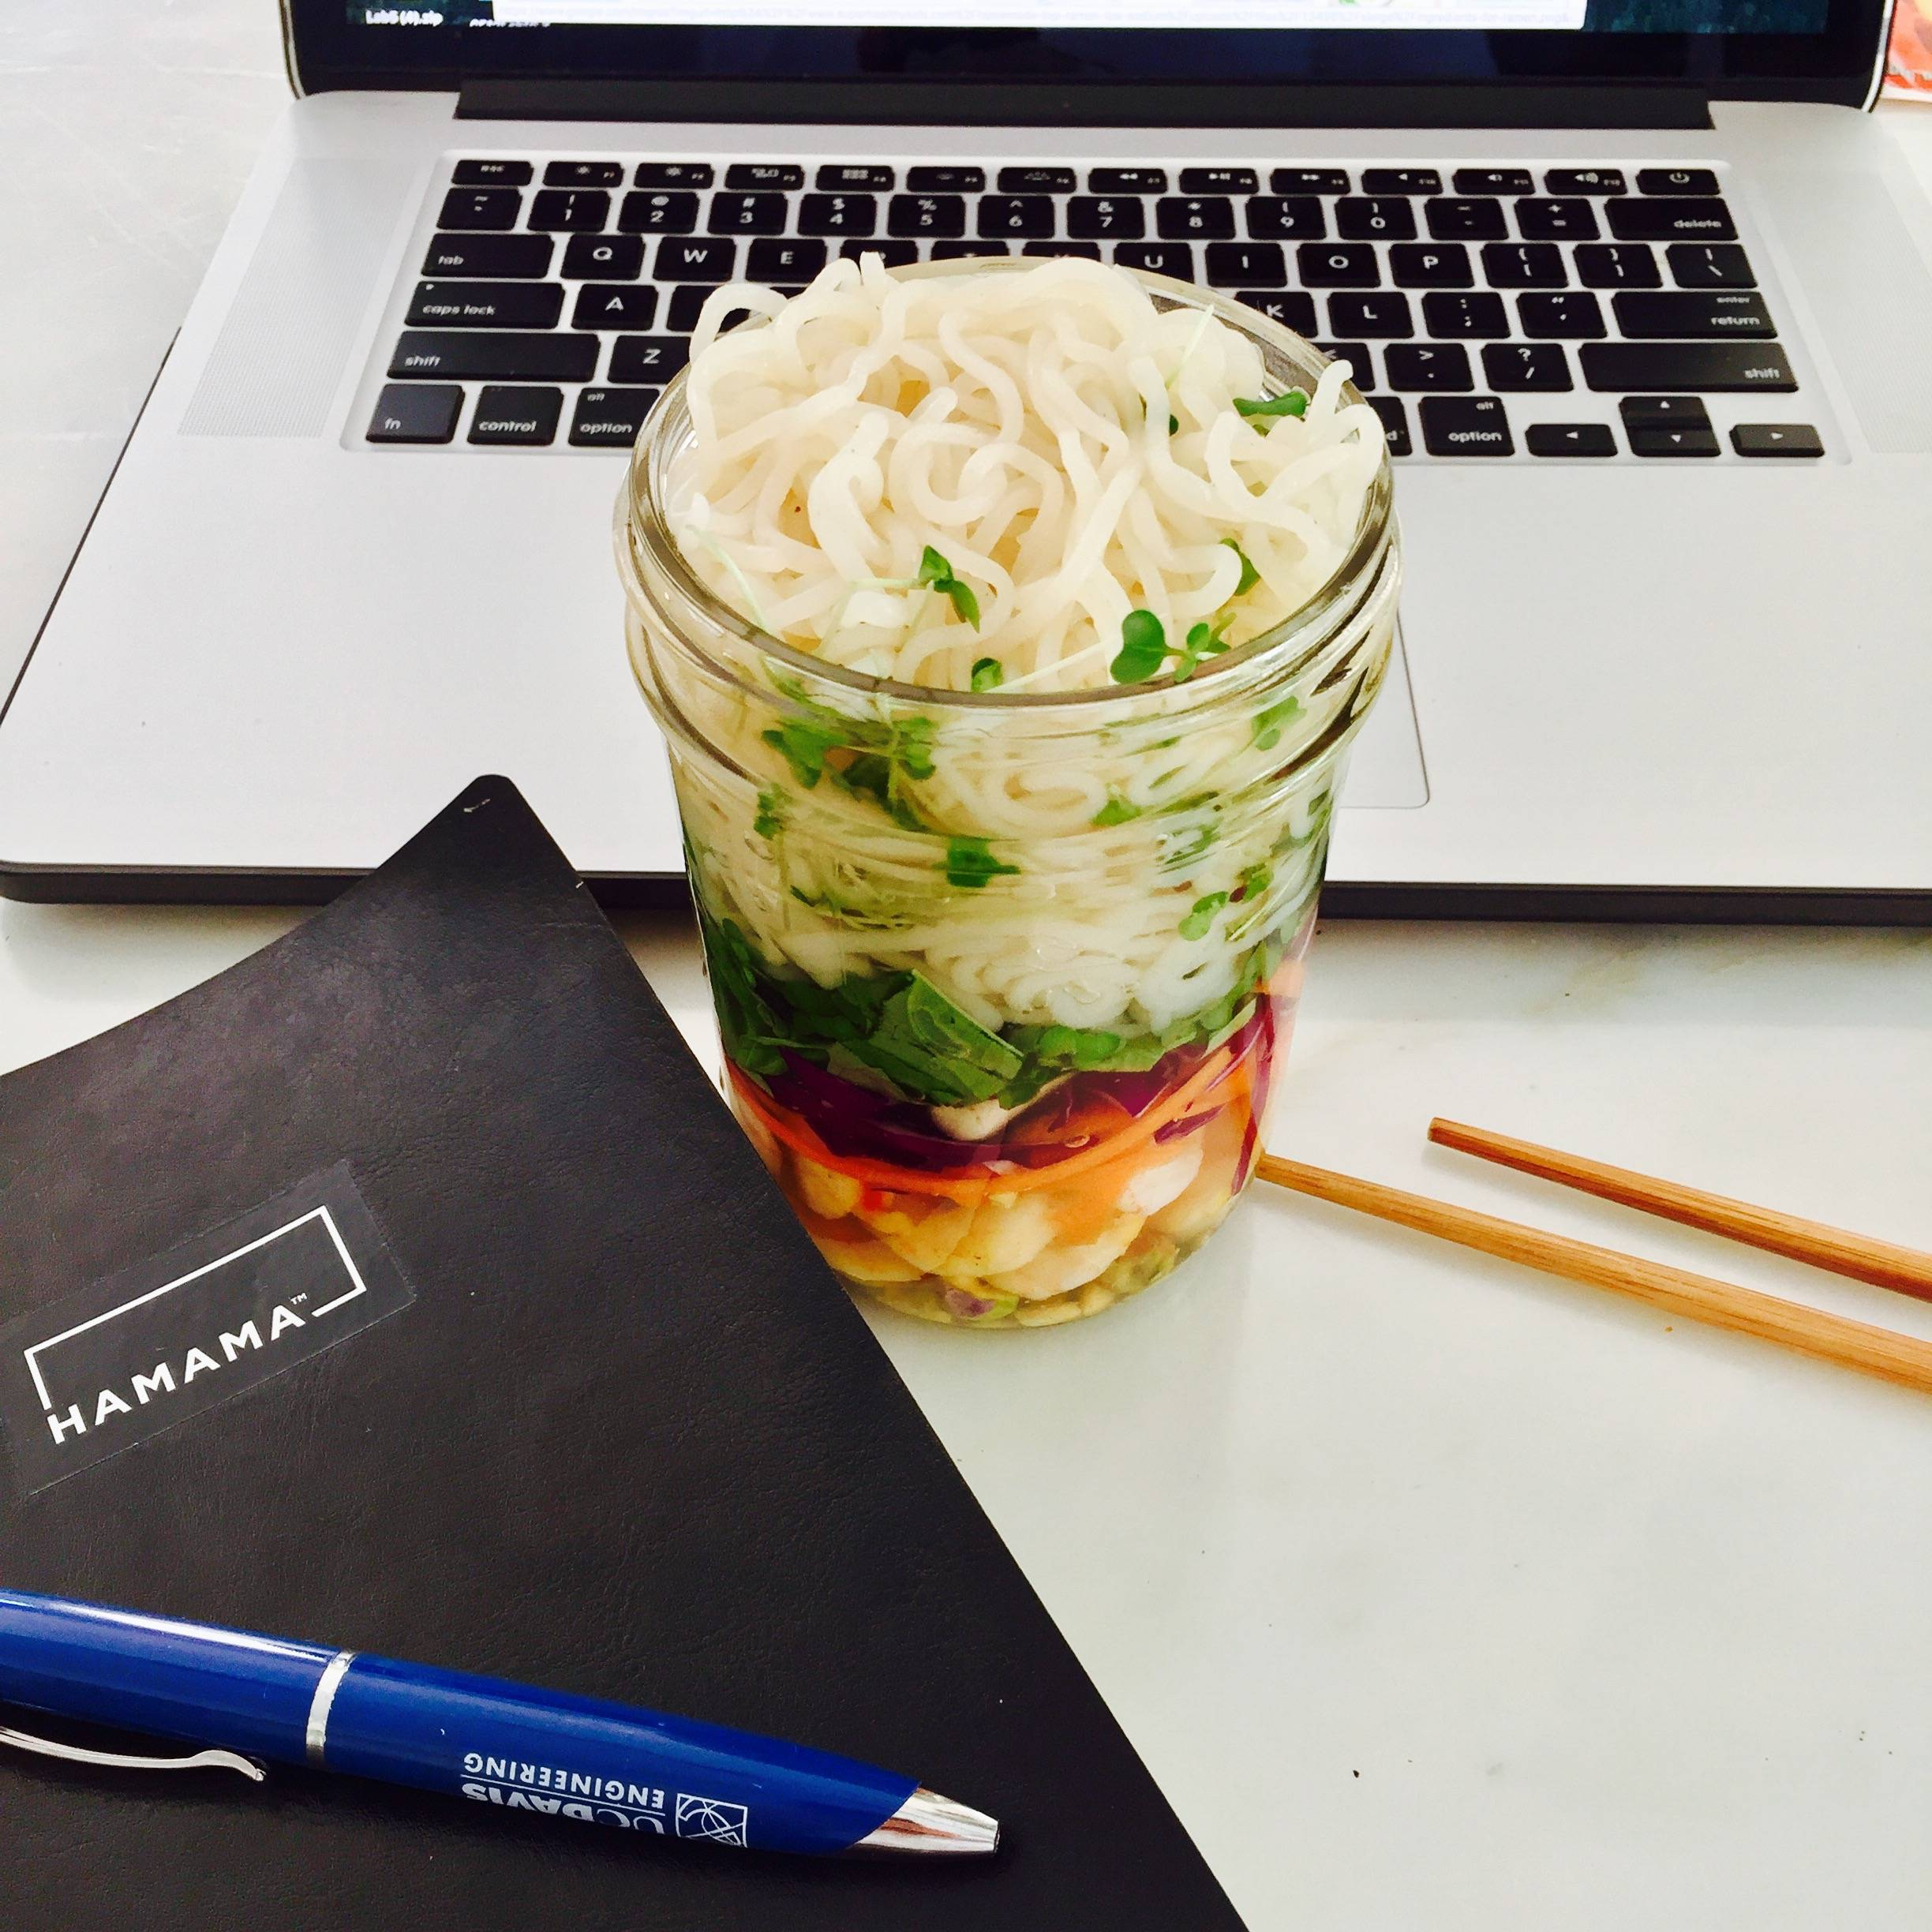 Pho in a mason jar with rice noodles, carrots, pistachios, purple cabbage, basil, and broccoli microgreens.